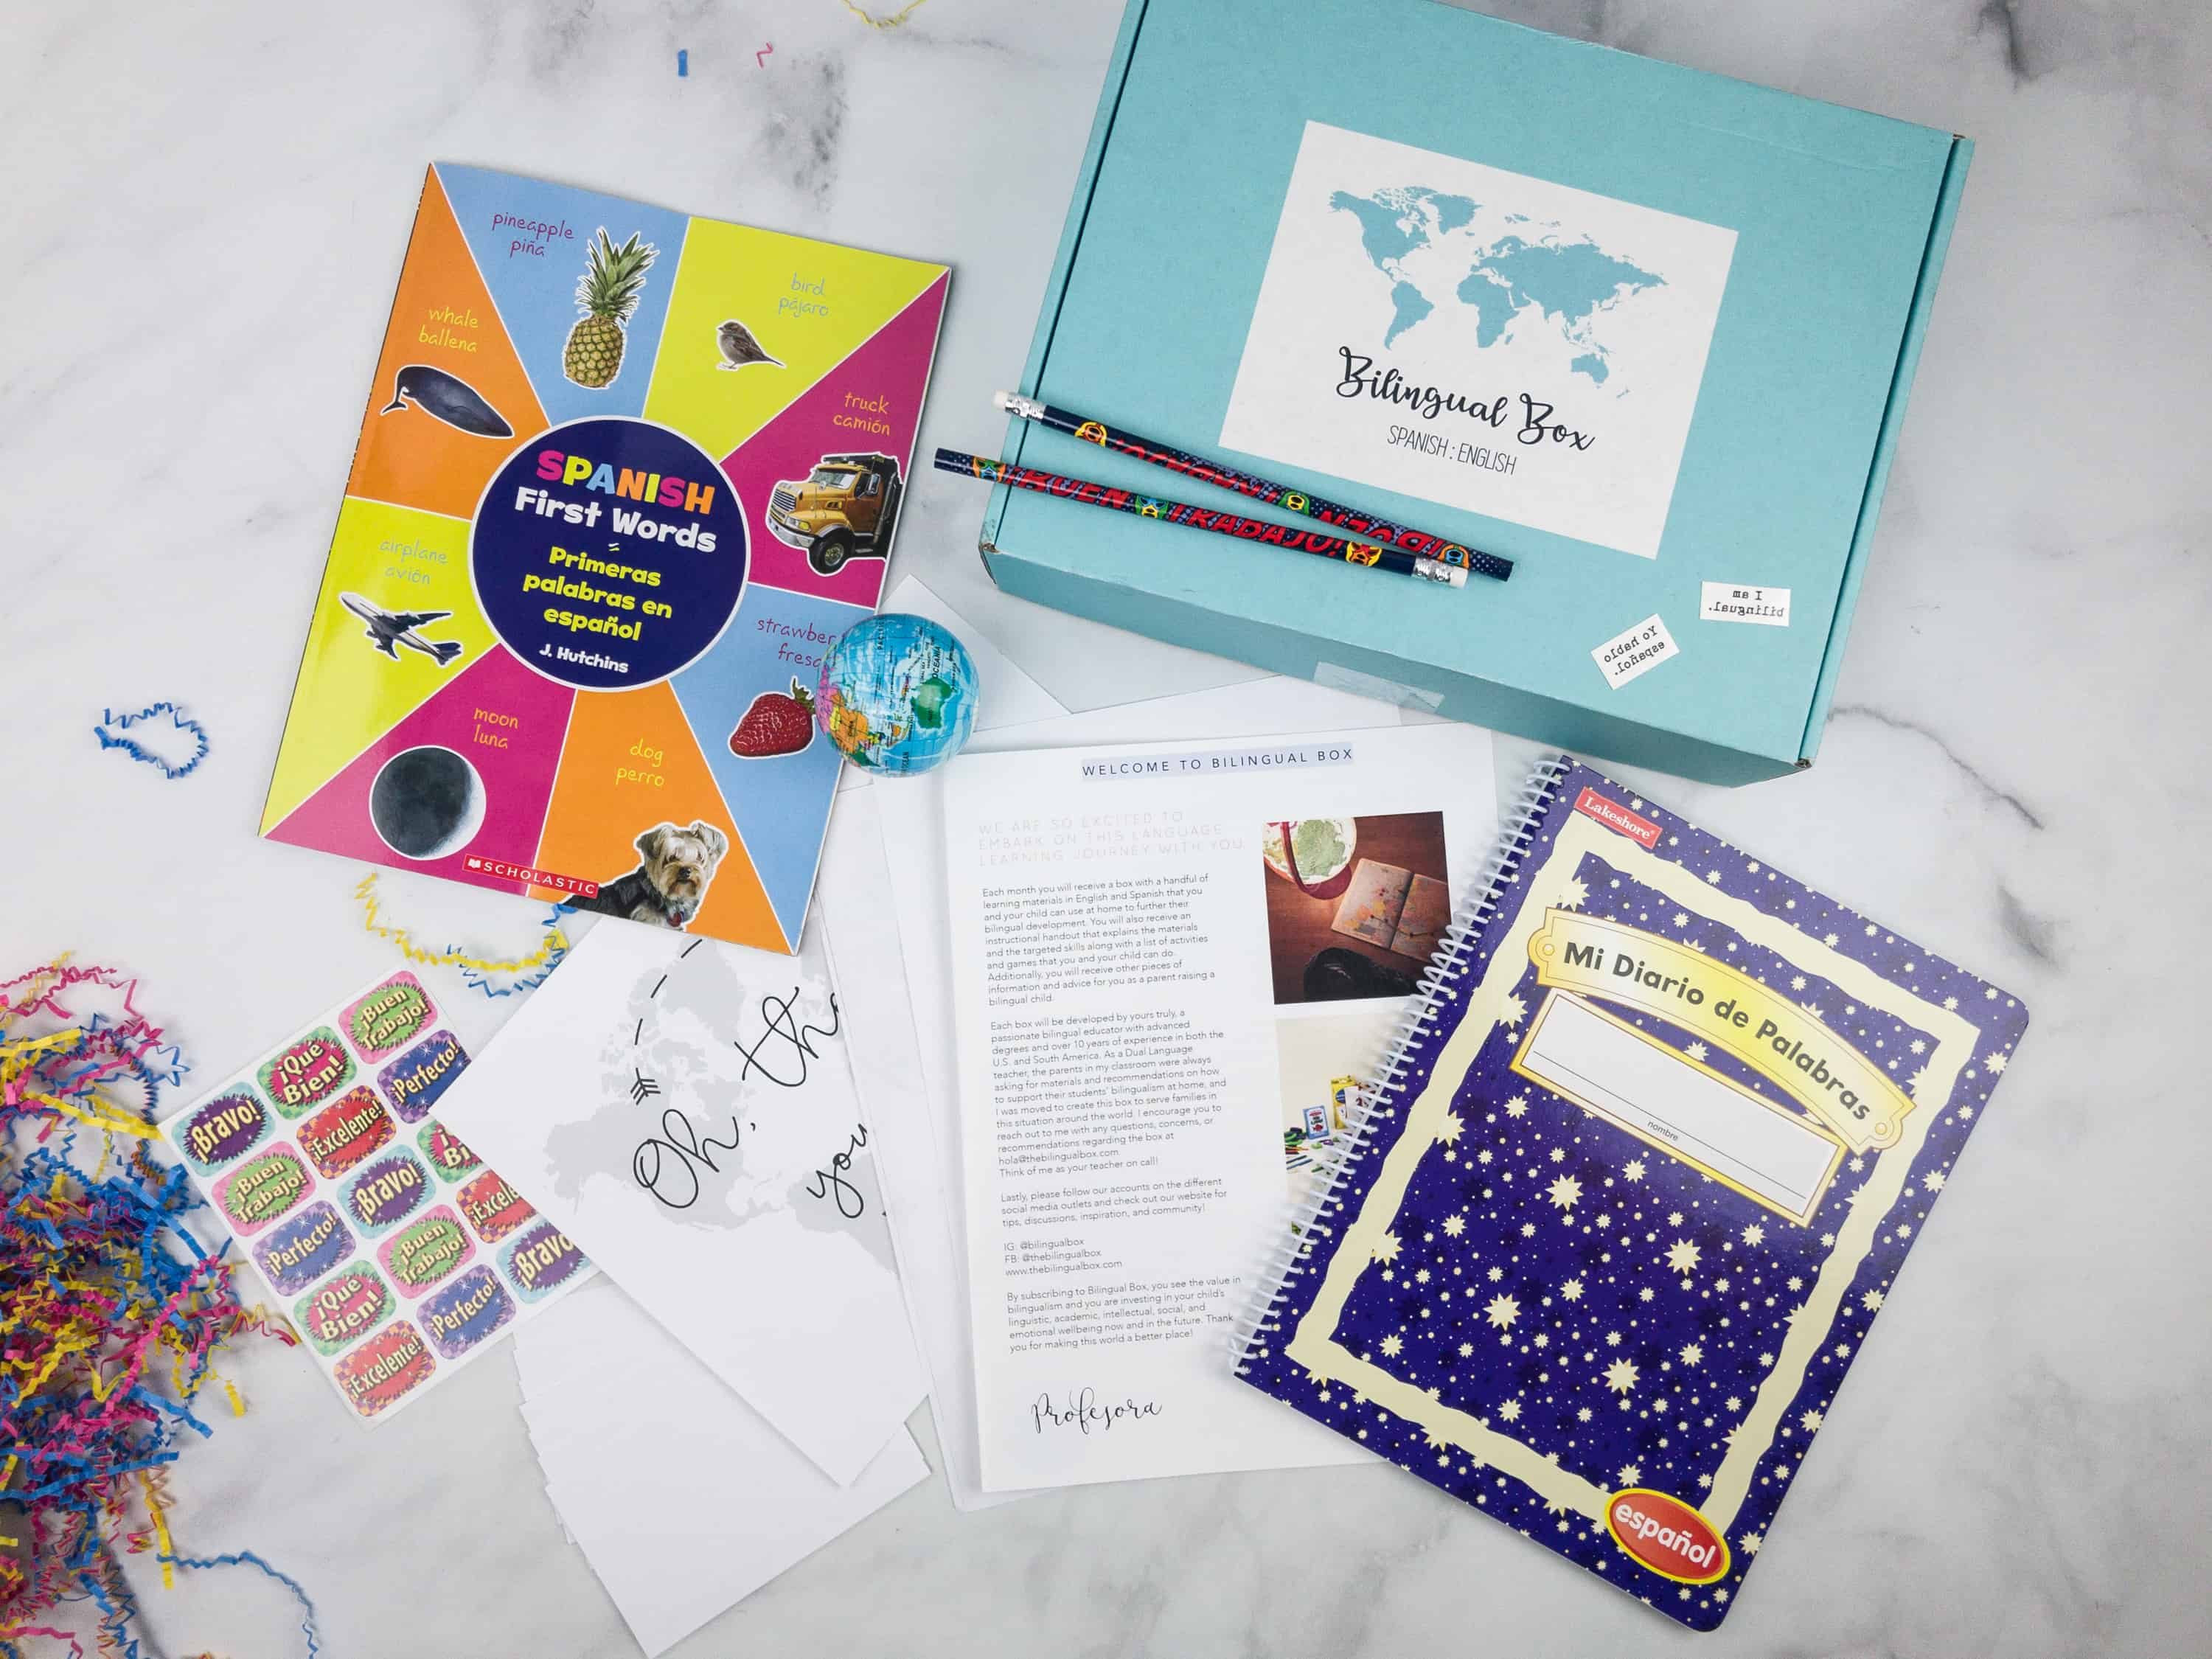 Bilingual Box Review